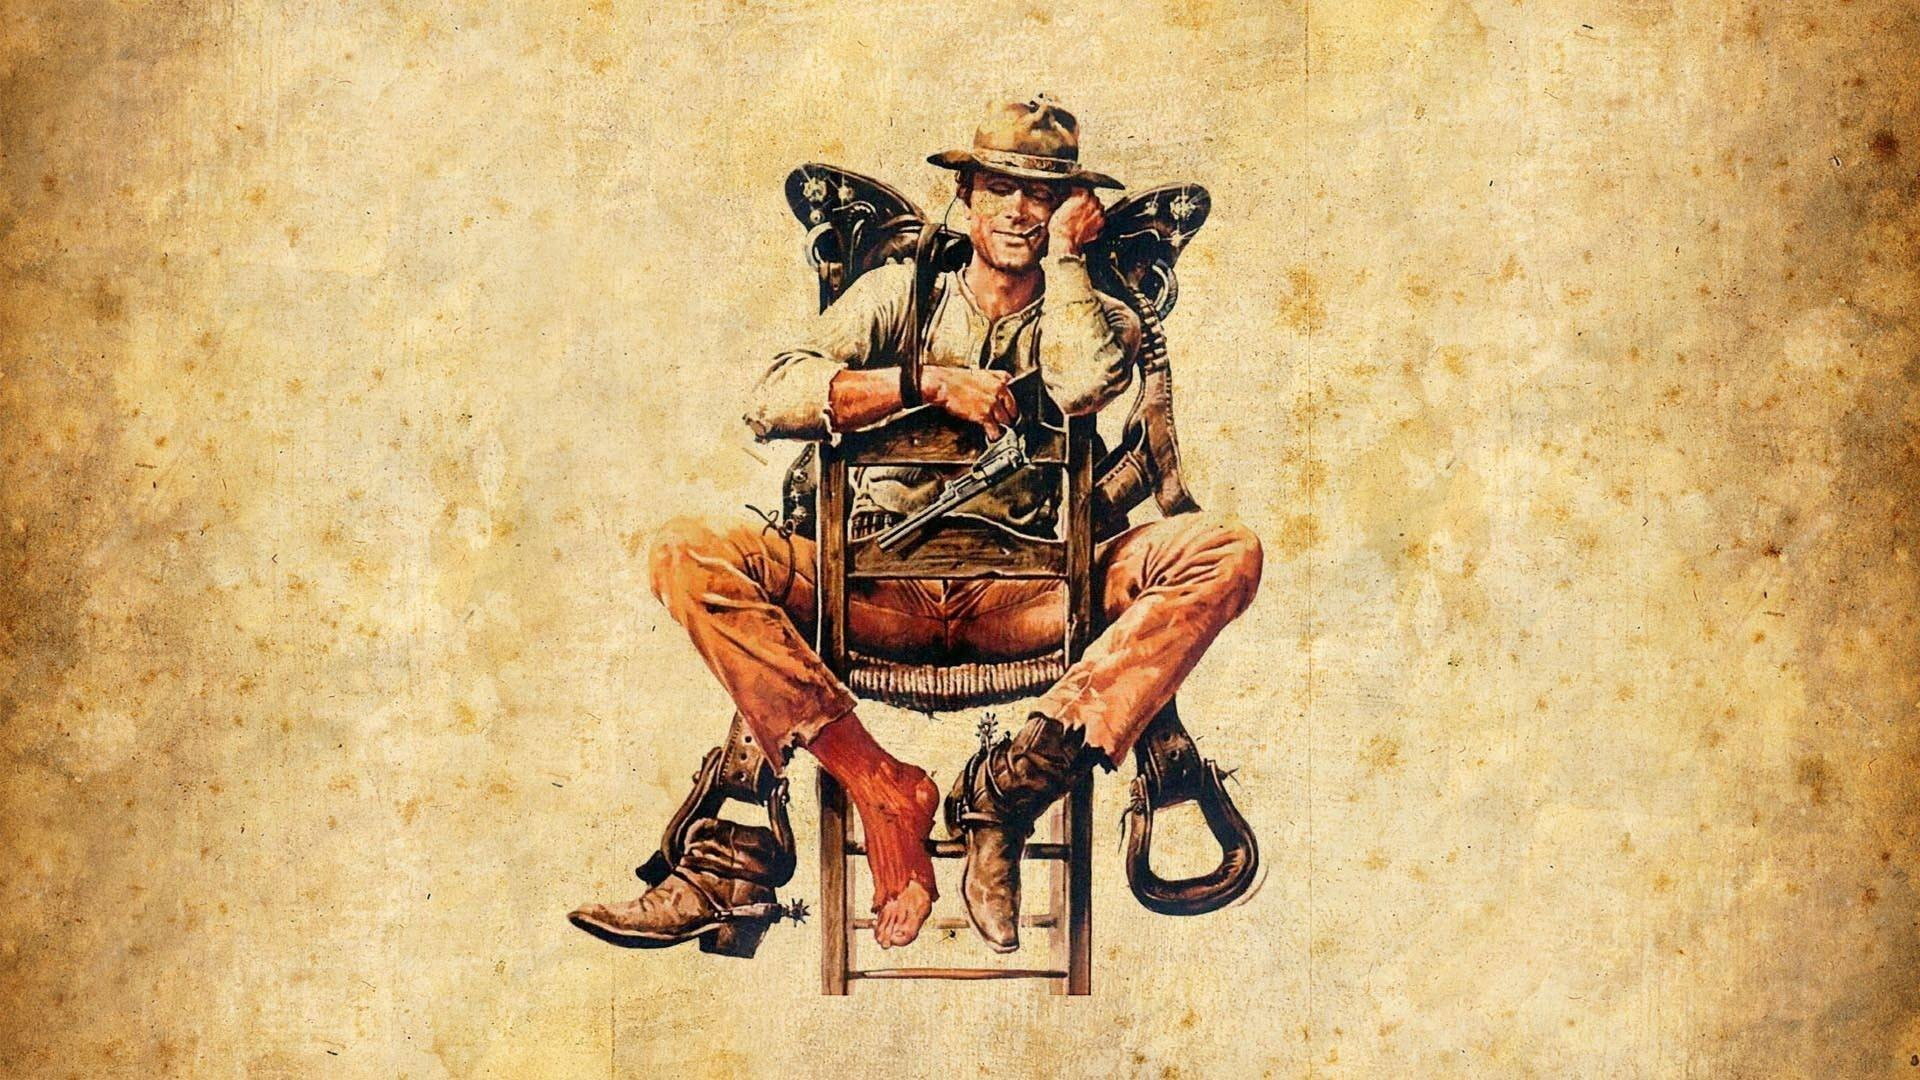 Country Western Wallpaper (57+ images)